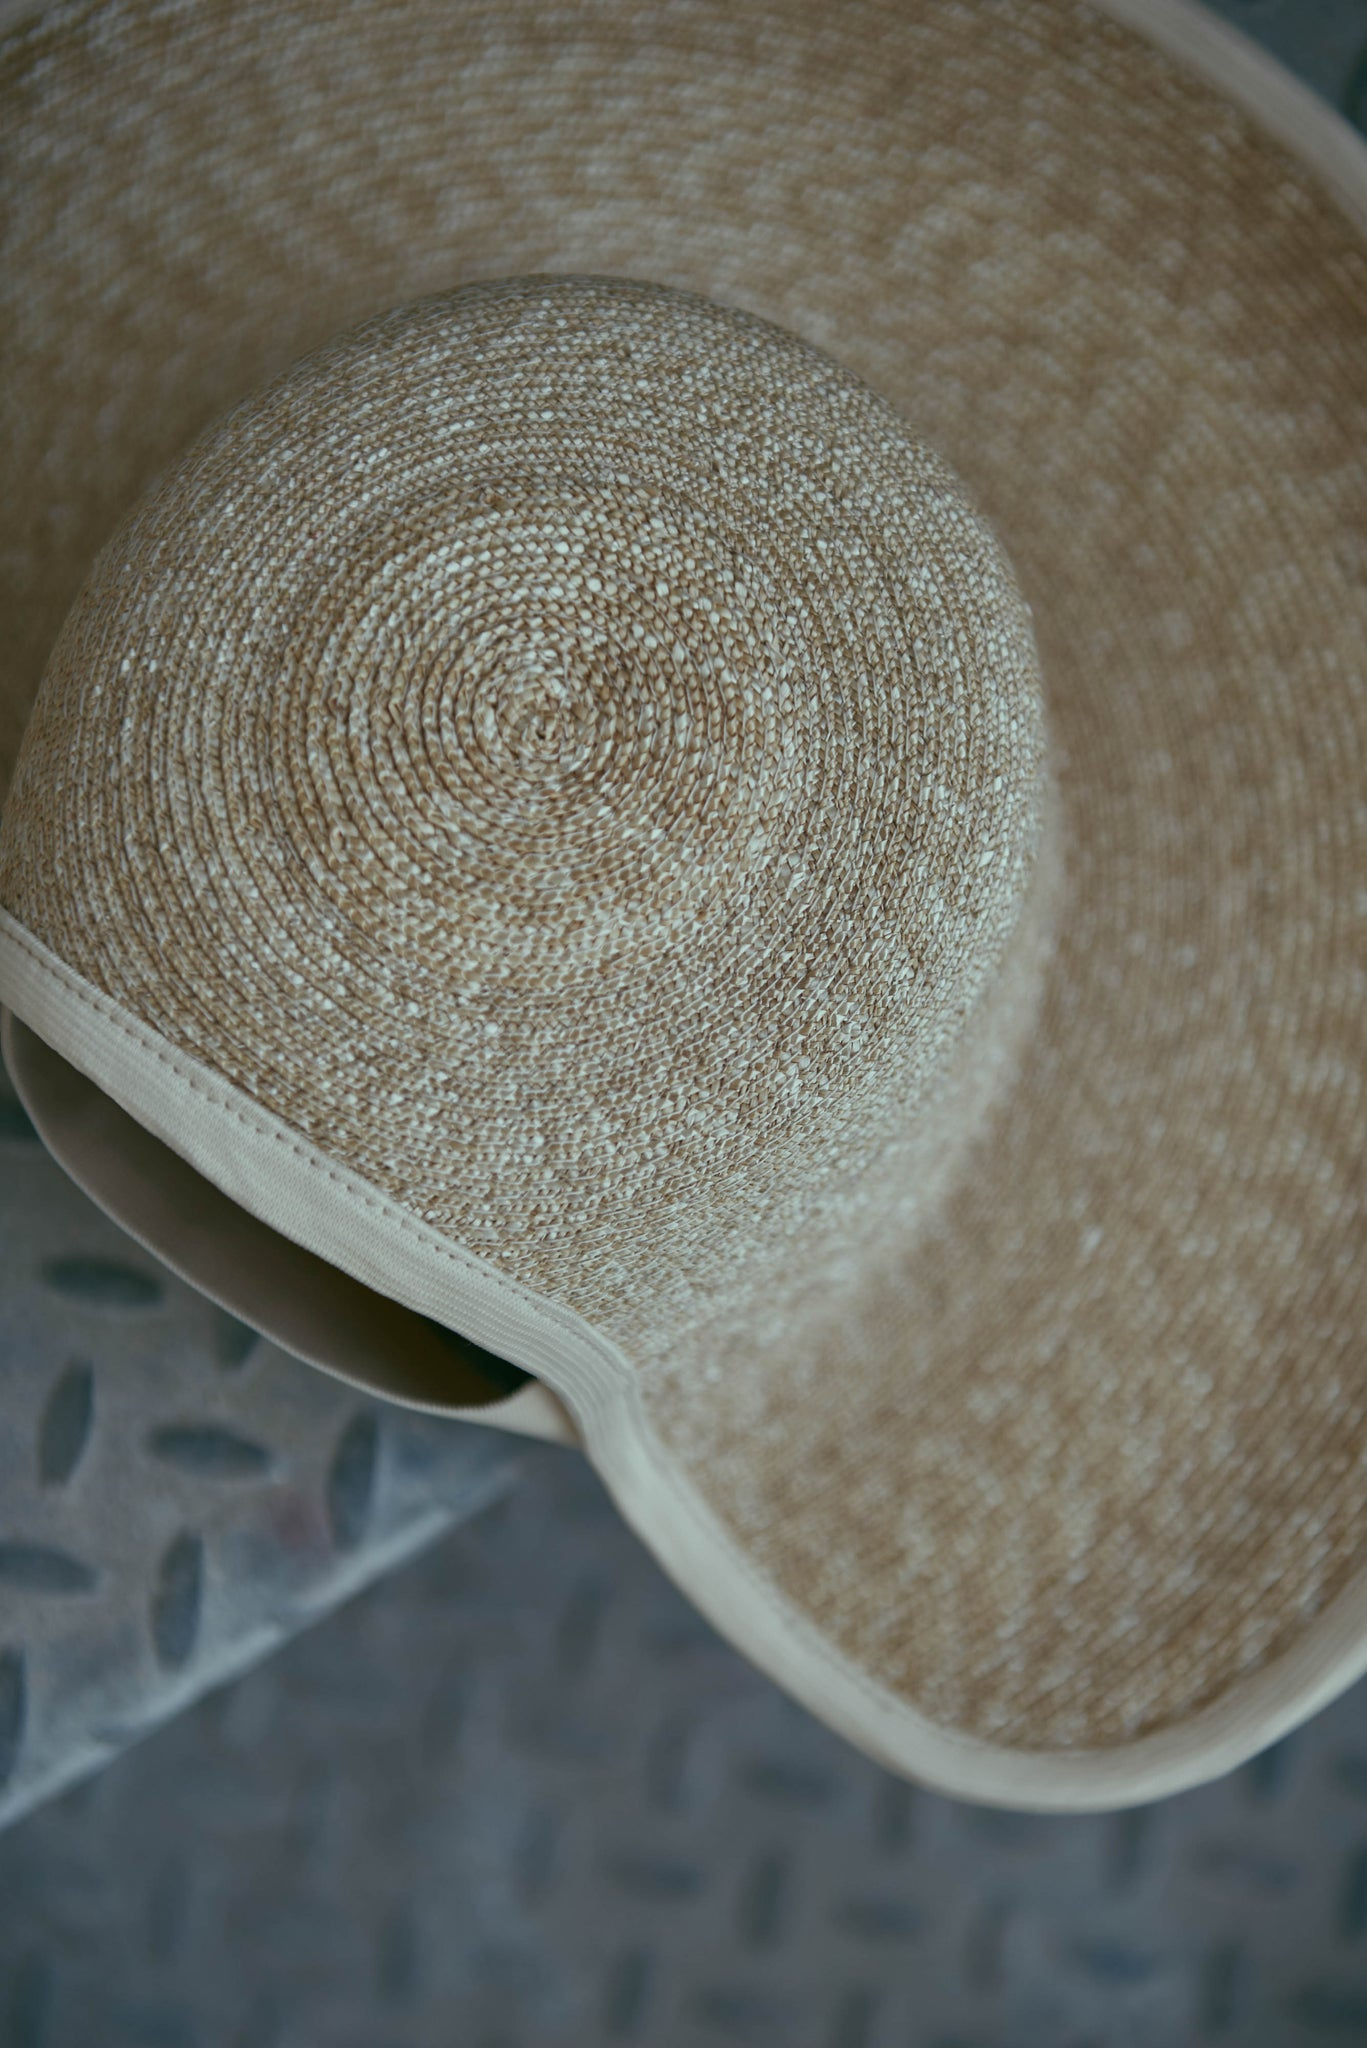 The details of the straw on the Jasmine SS19 hat.